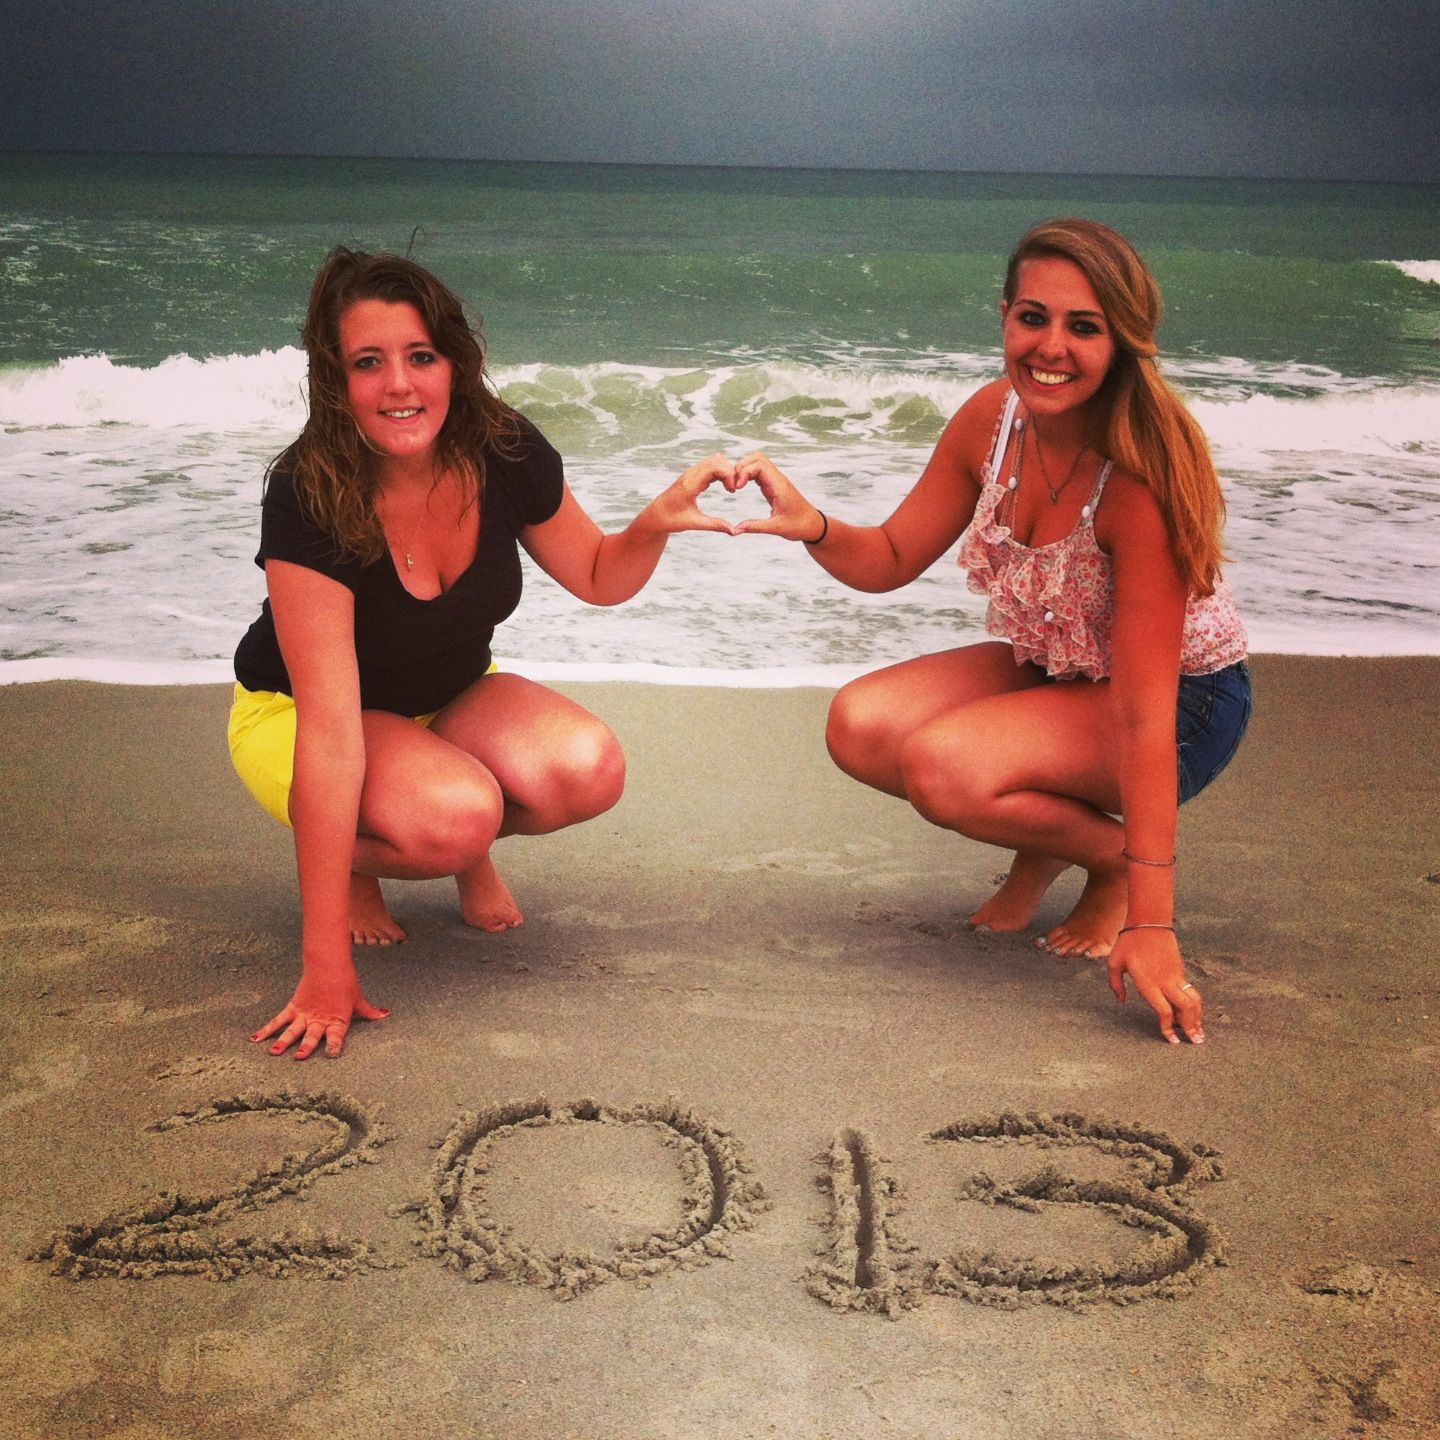 91 Best At The Beach Images On Pinterest: Best 25+ Friend Beach Pictures Ideas On Pinterest